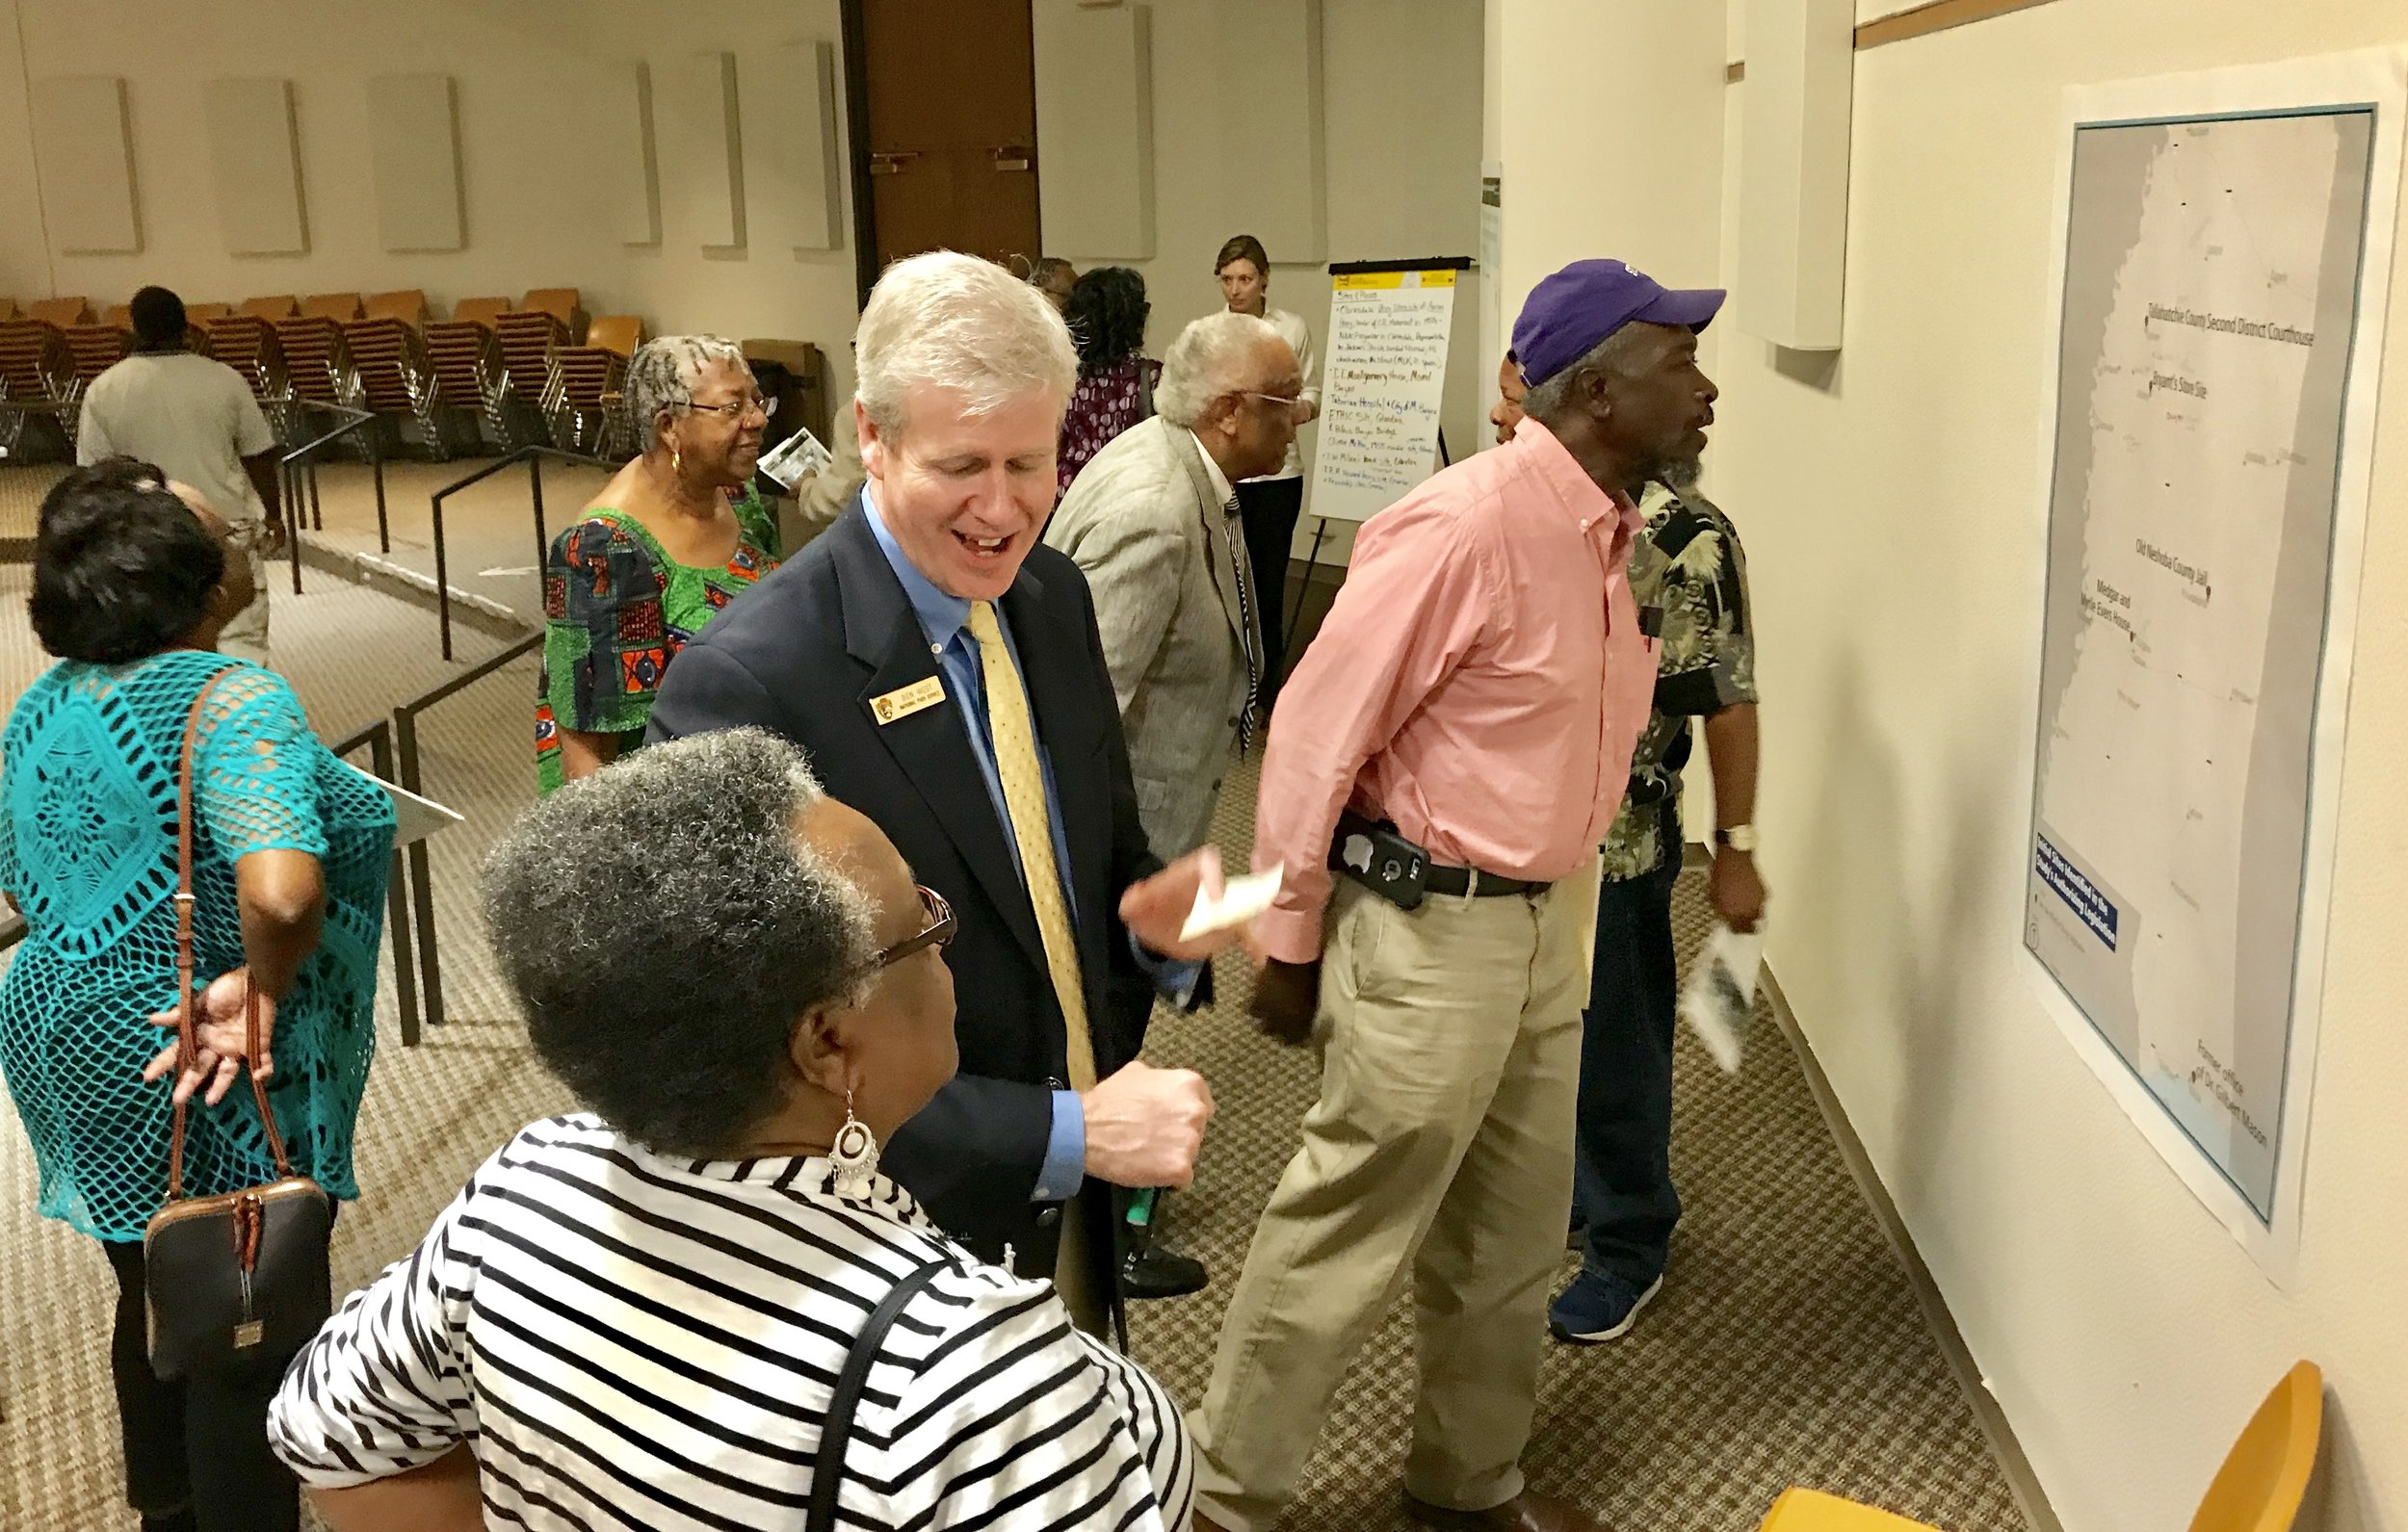 Ben West and community at NPS civil rights open house.jpg